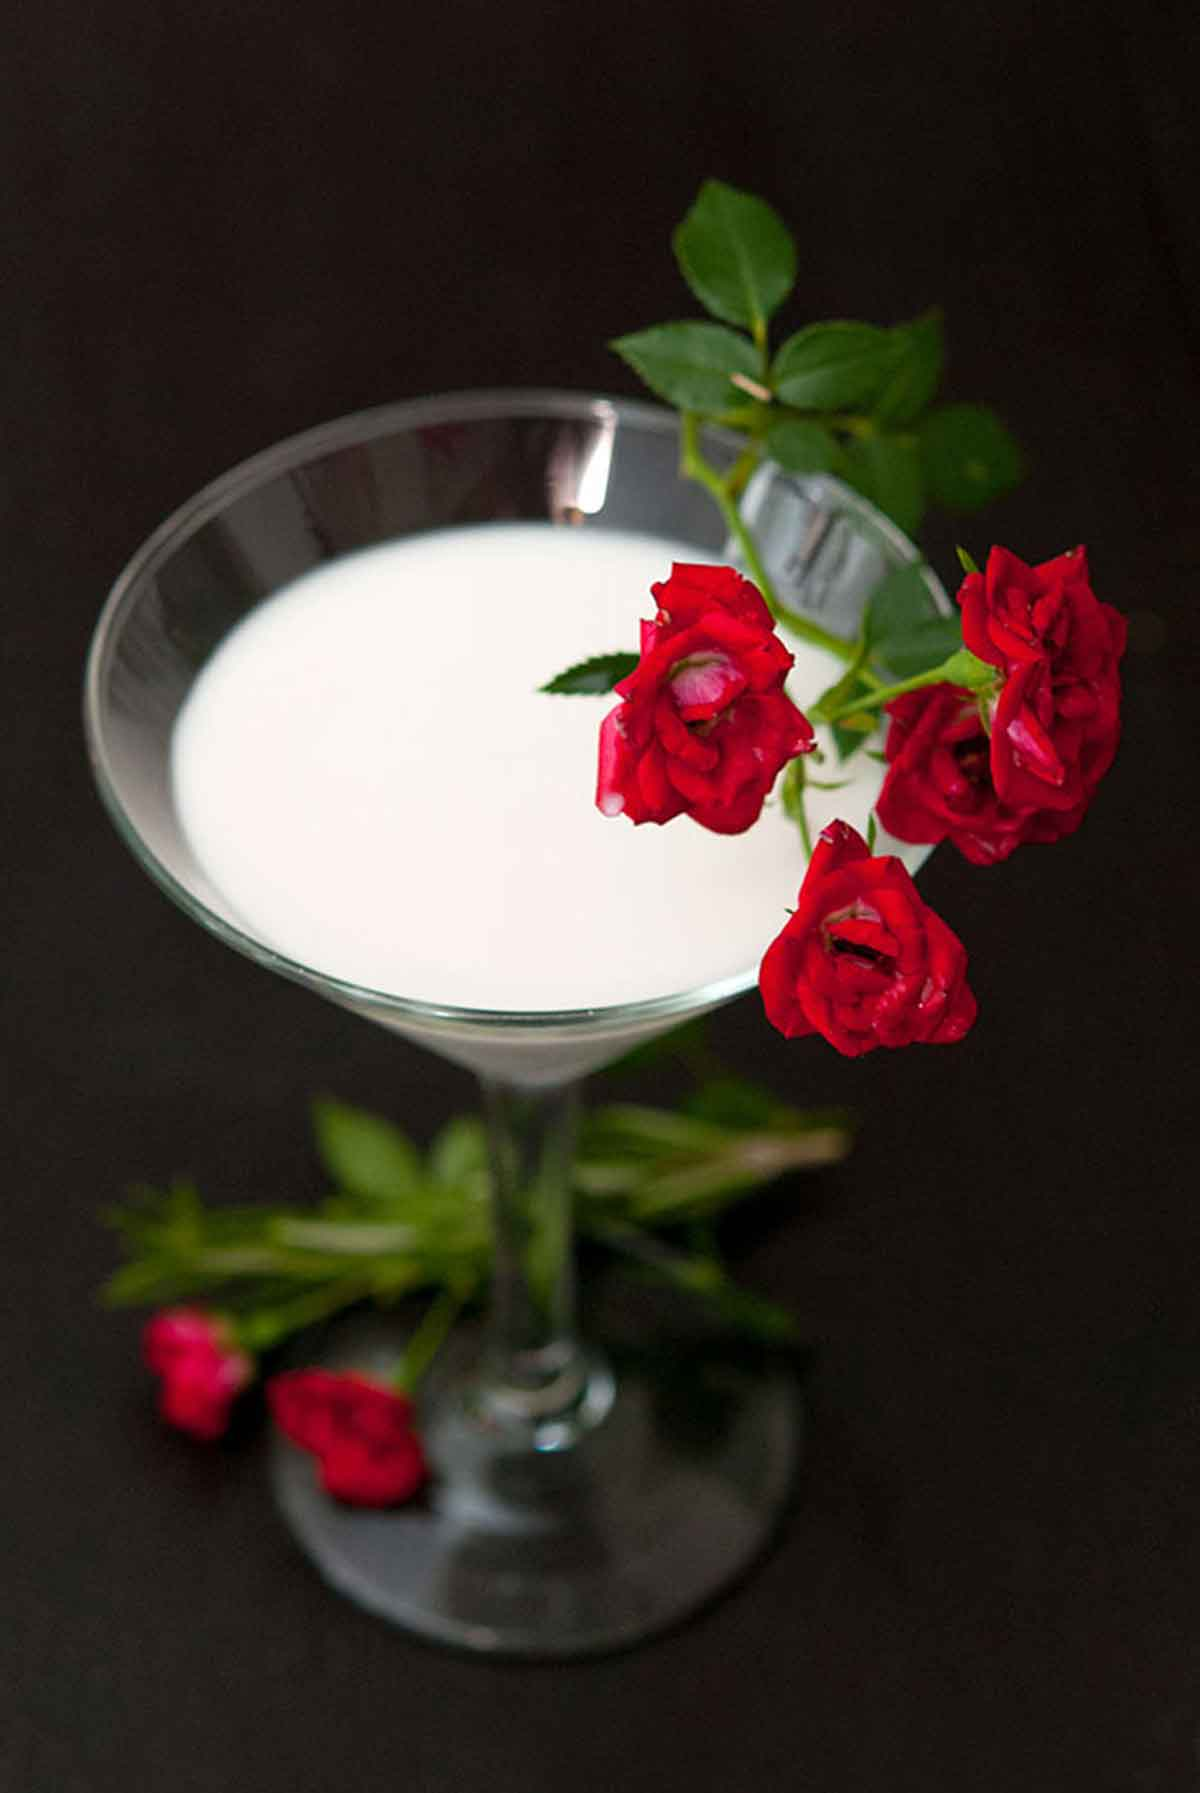 A cocktail in a martini glass on a black table, garnished with a few small spray roses.